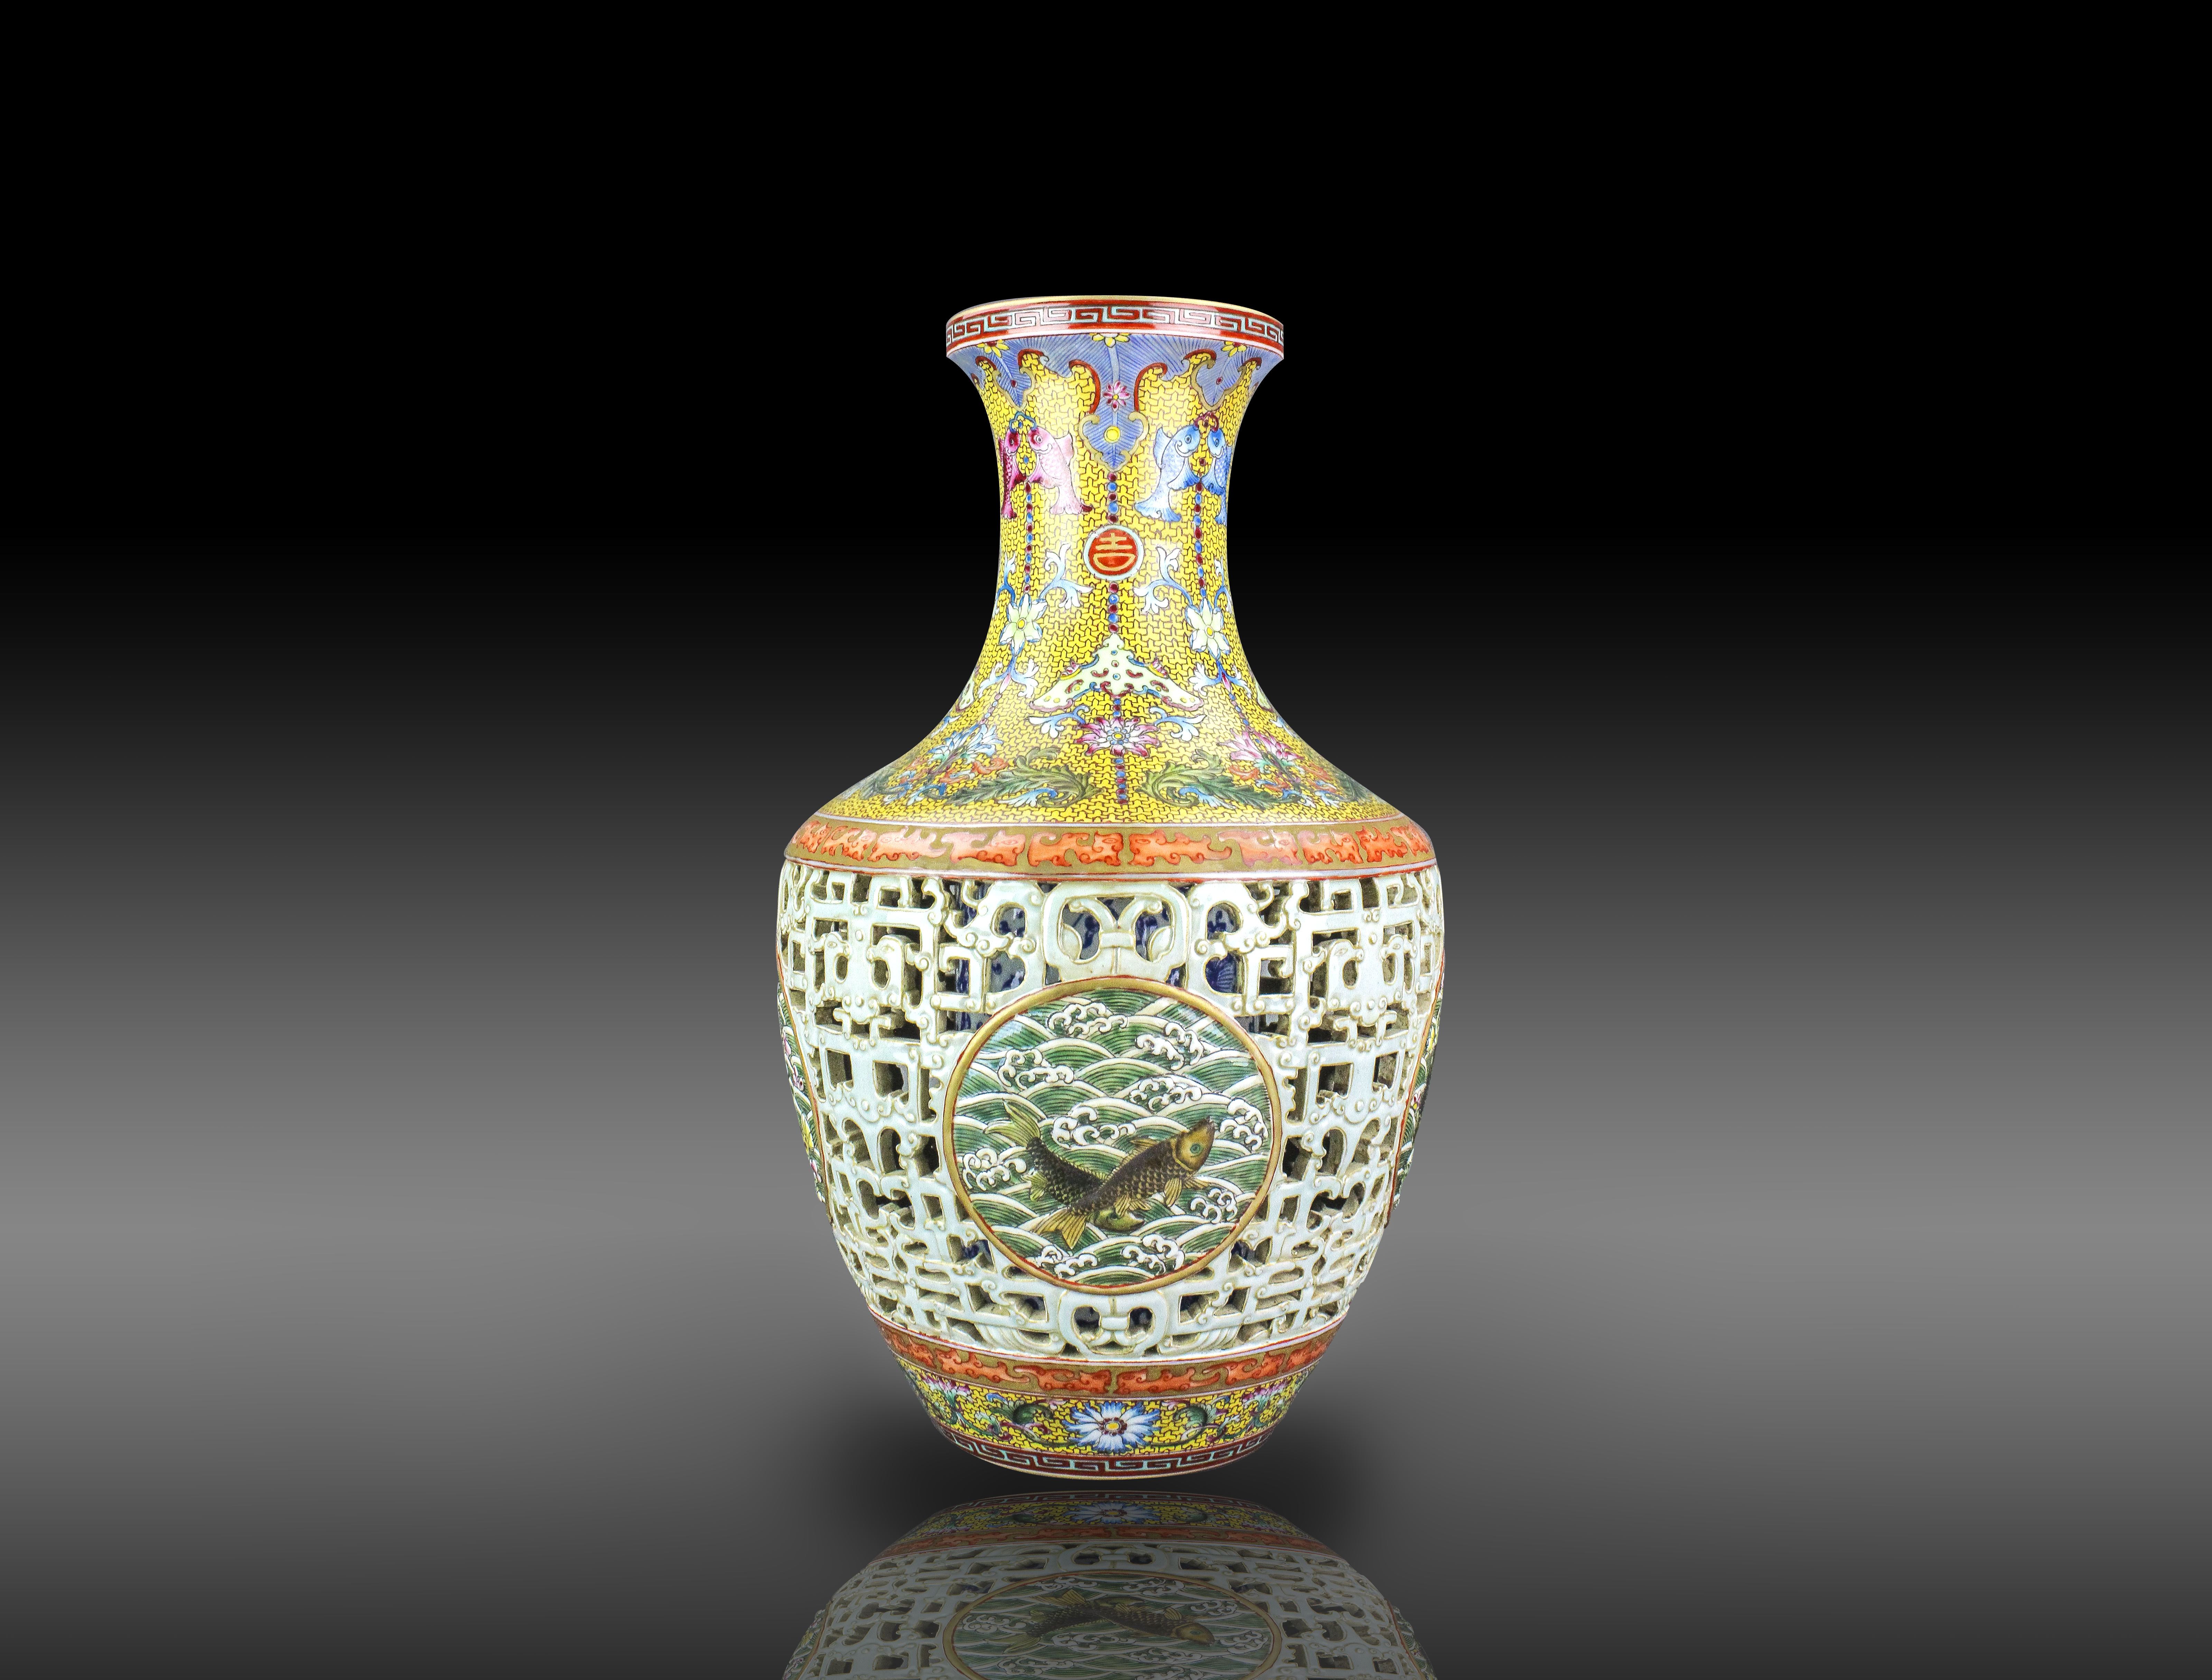 Qianlong vase headlines 888 auctions chinese art sale july 16 this chinese porcelain reticulated vase bearing the imperial mark of qianlong stands 16 12 reviewsmspy